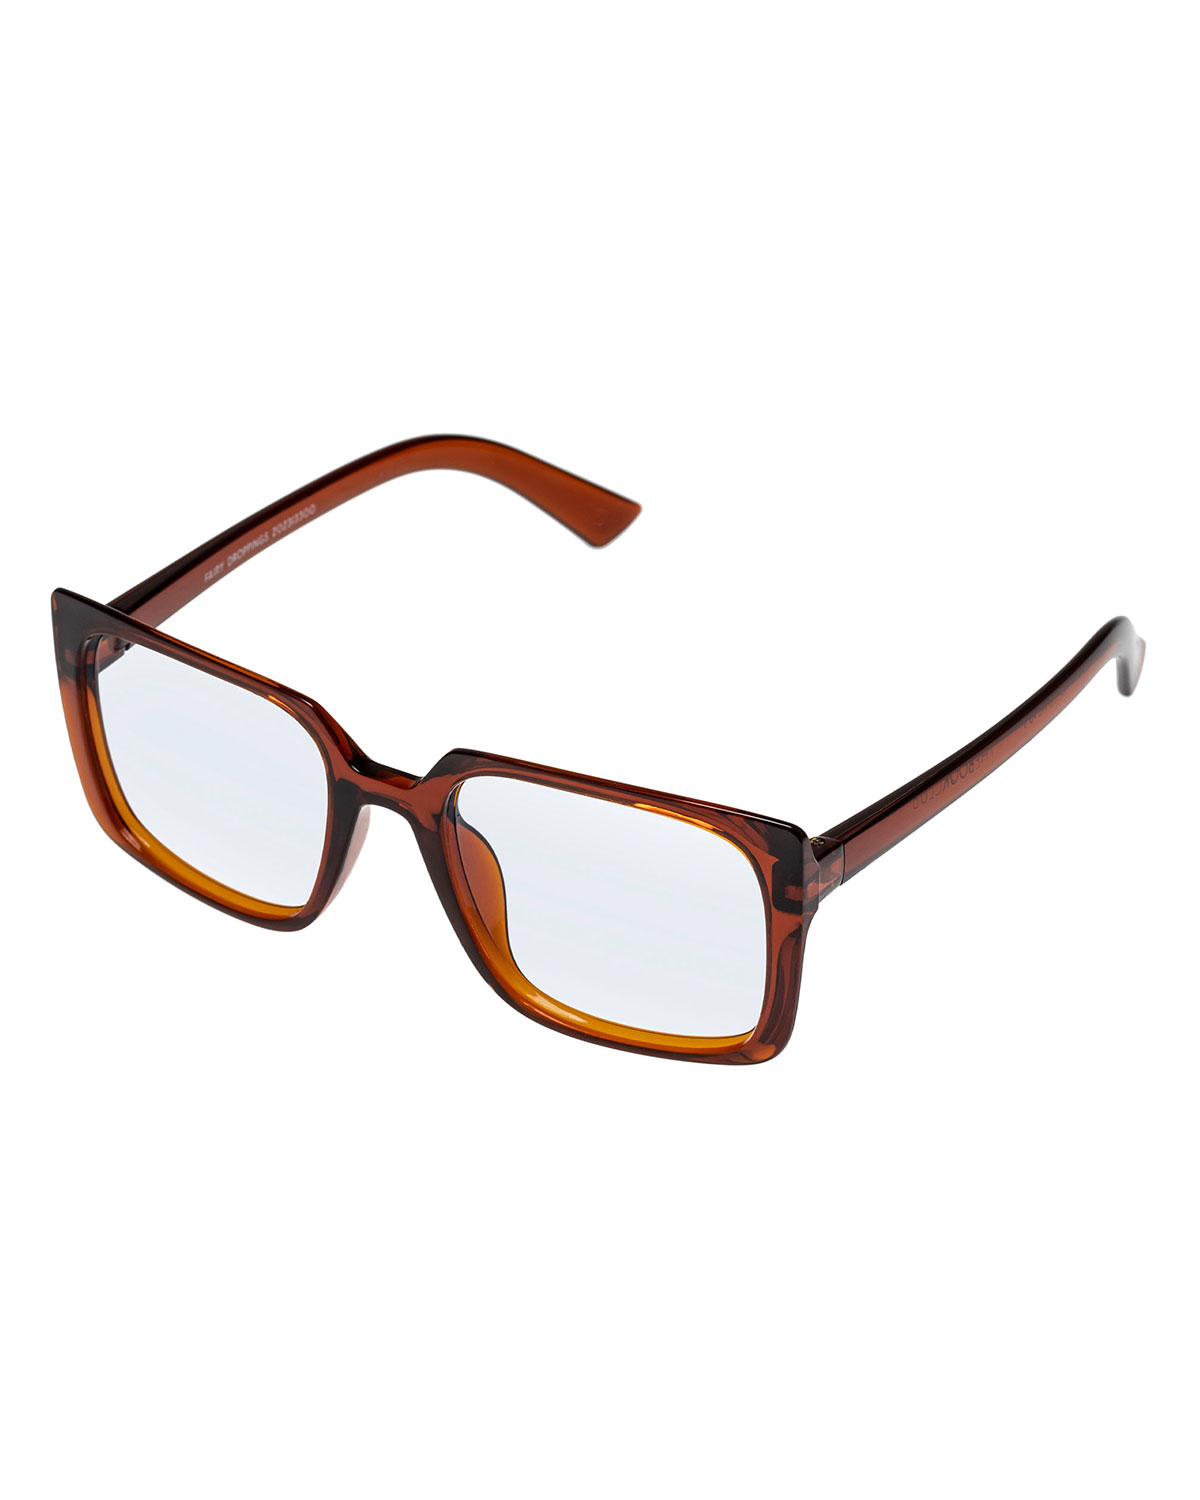 Fairy Droppings Dramatic Square Plastic Reading Glasses